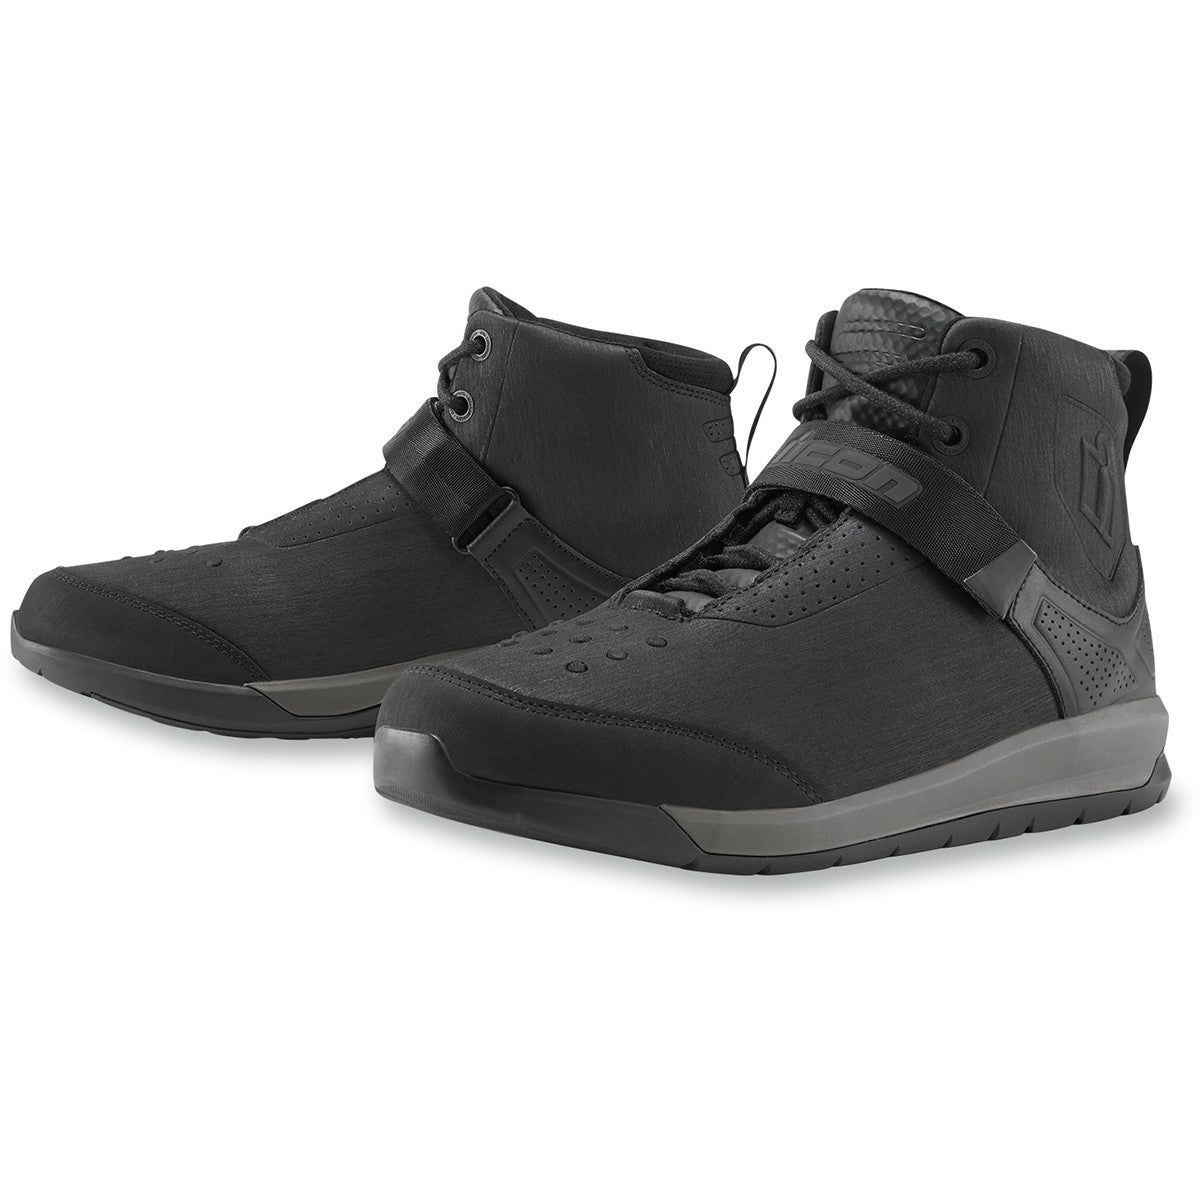 ICON MEN'S SUPERDUTY™? 5? BOOTS